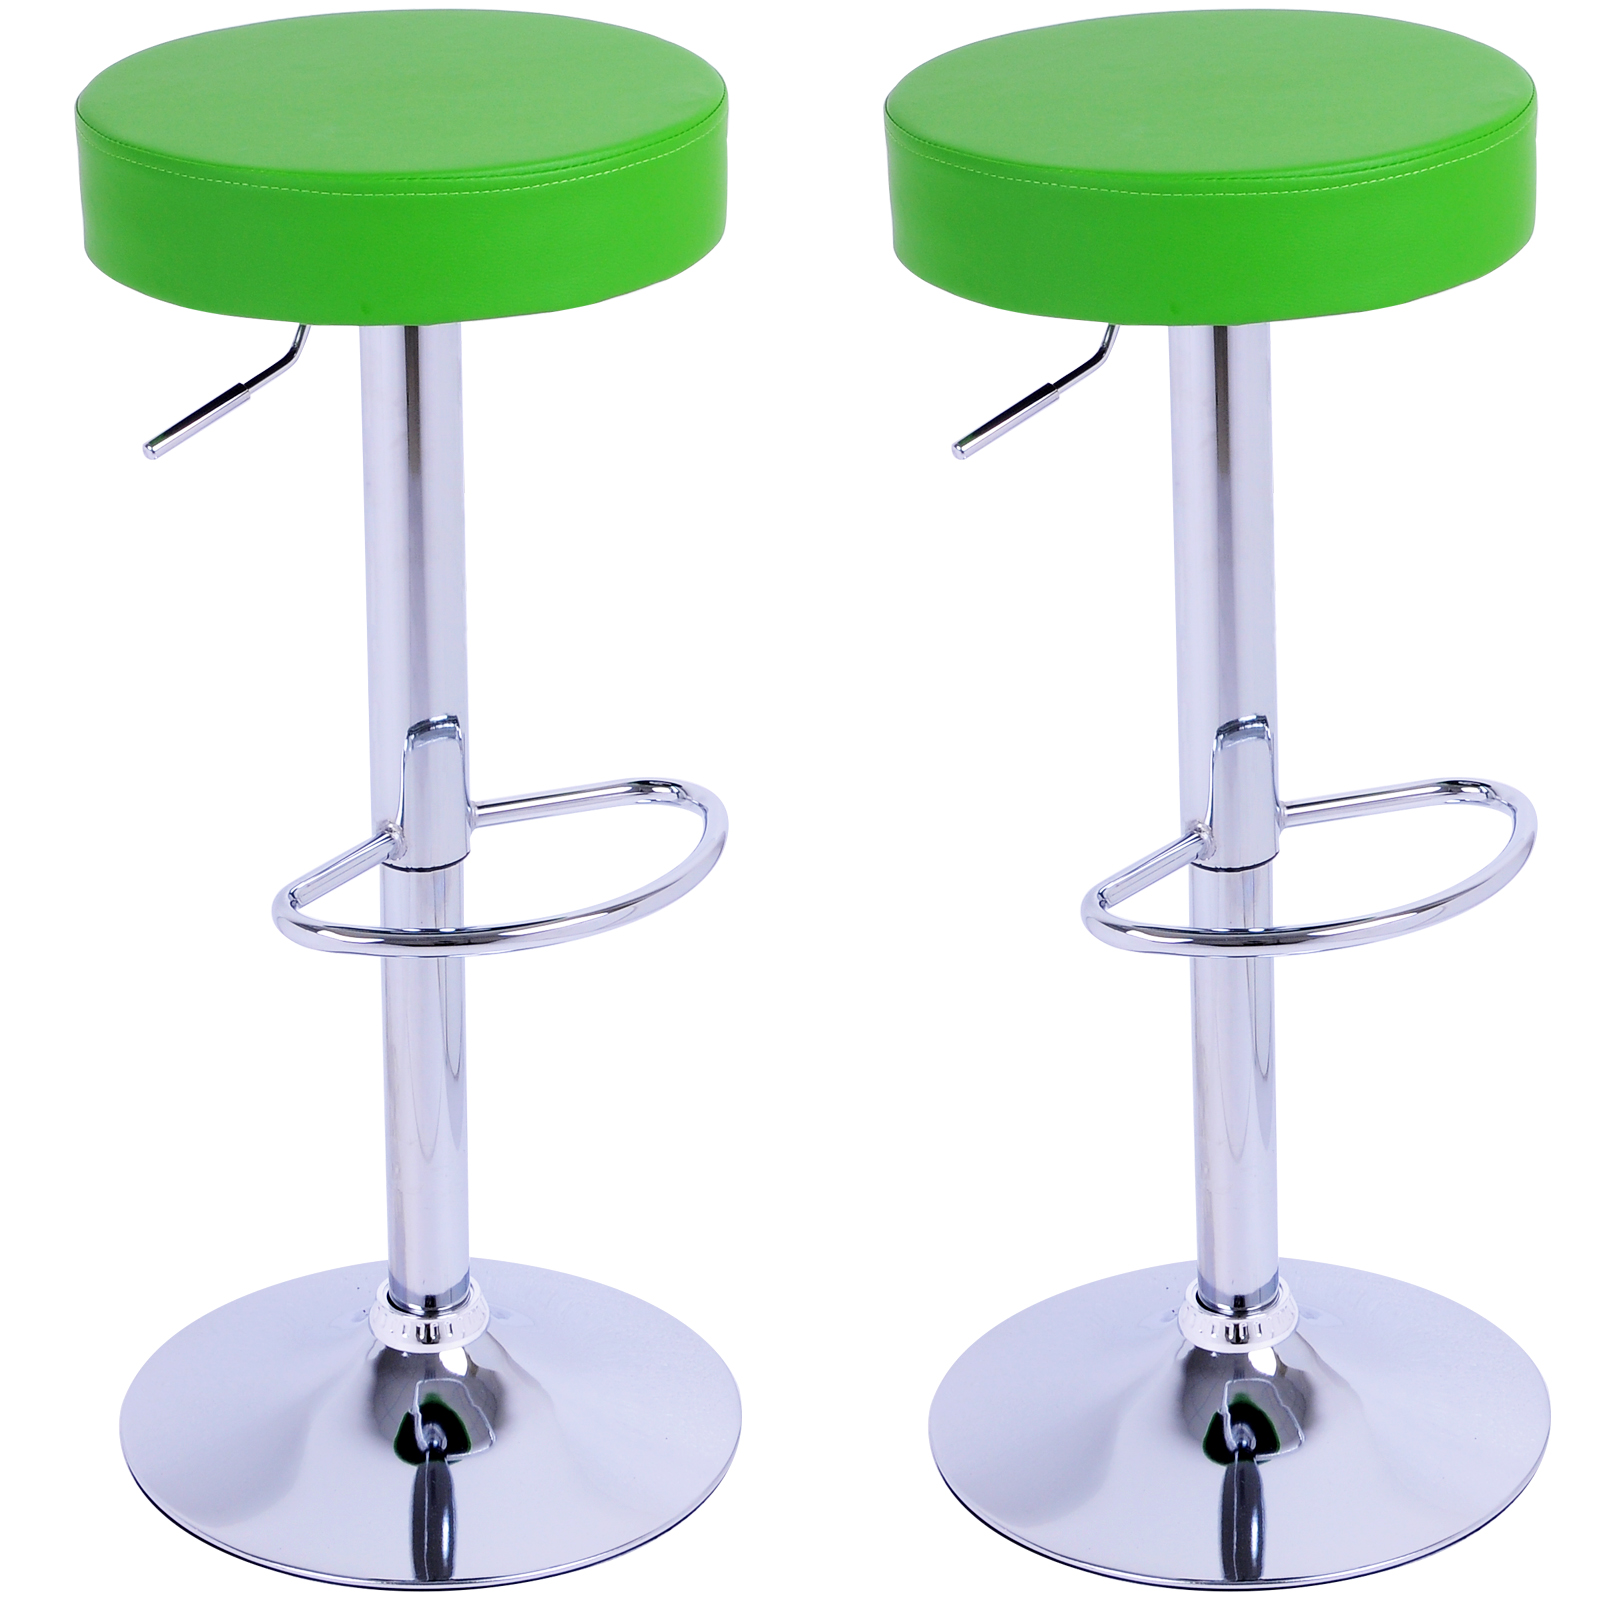 Bar Stools set of 2 Breakfast Kitchen Chair Adjustable  : BH20gn0 from www.ebay.co.uk size 1600 x 1600 jpeg 605kB